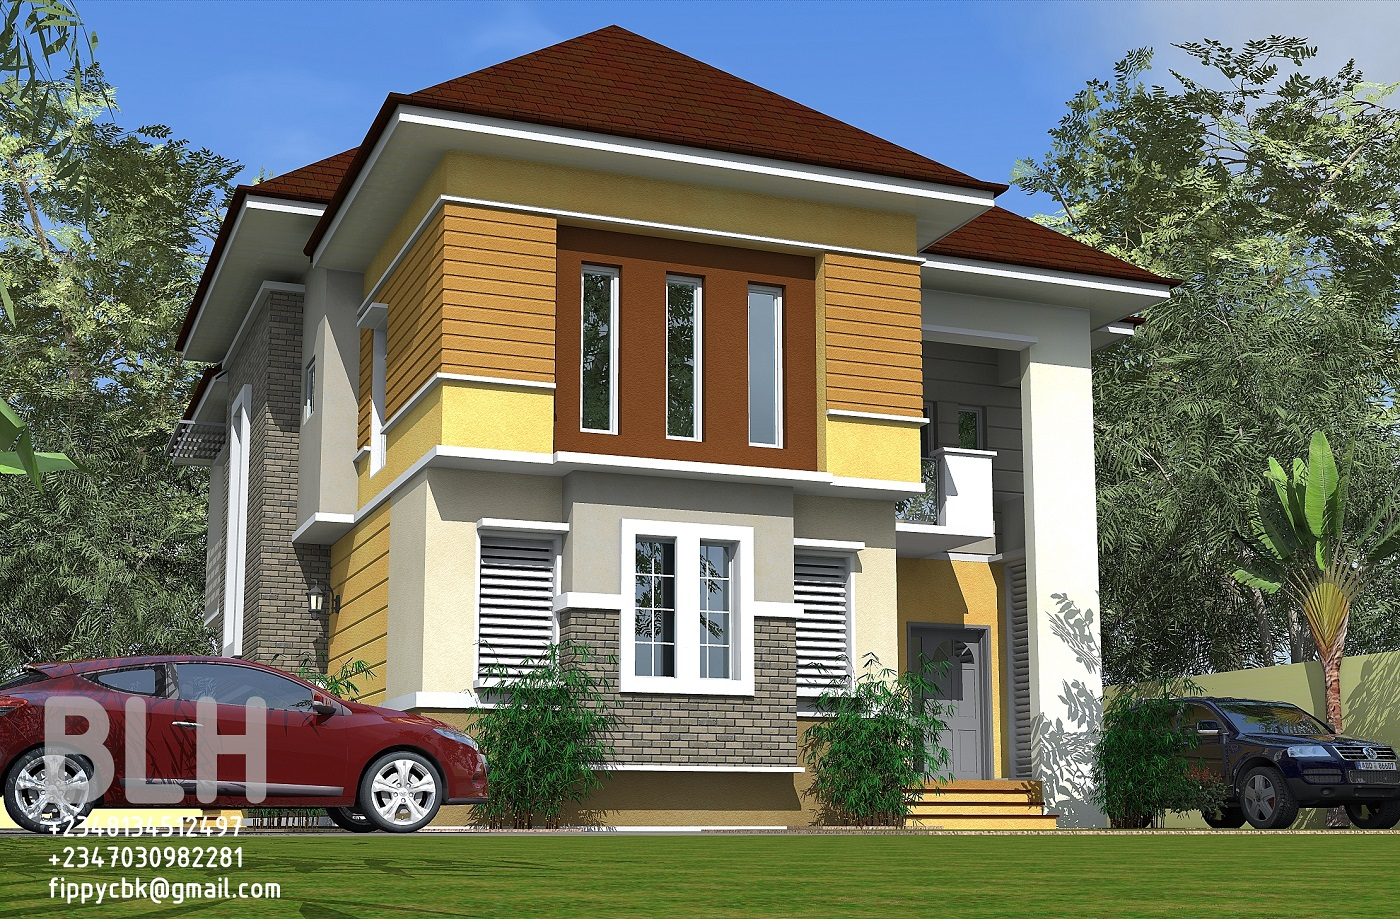 Architectural designs by blacklakehouse 4 bedroom duplex for Architectural designs for 5 bedroom duplex